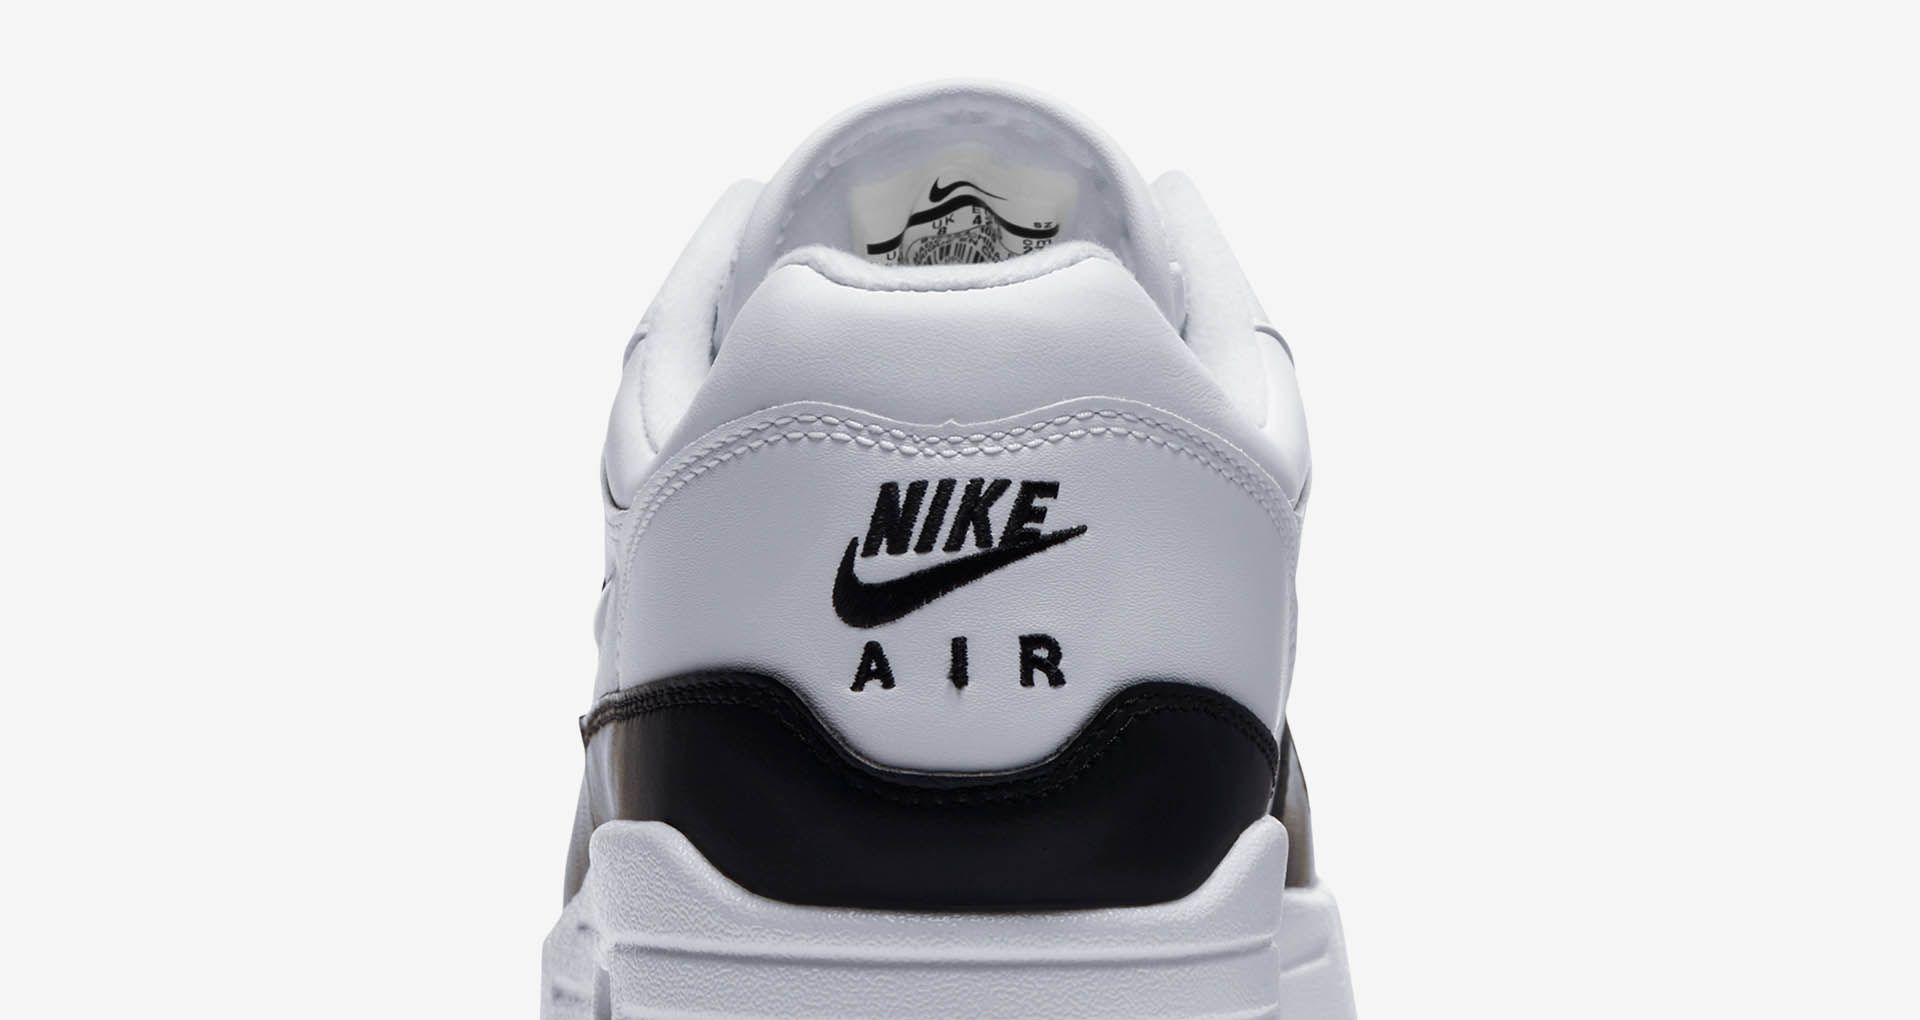 Air Max 1 Premium Jewel 'Black & White' Release Date. Nike SNKRS